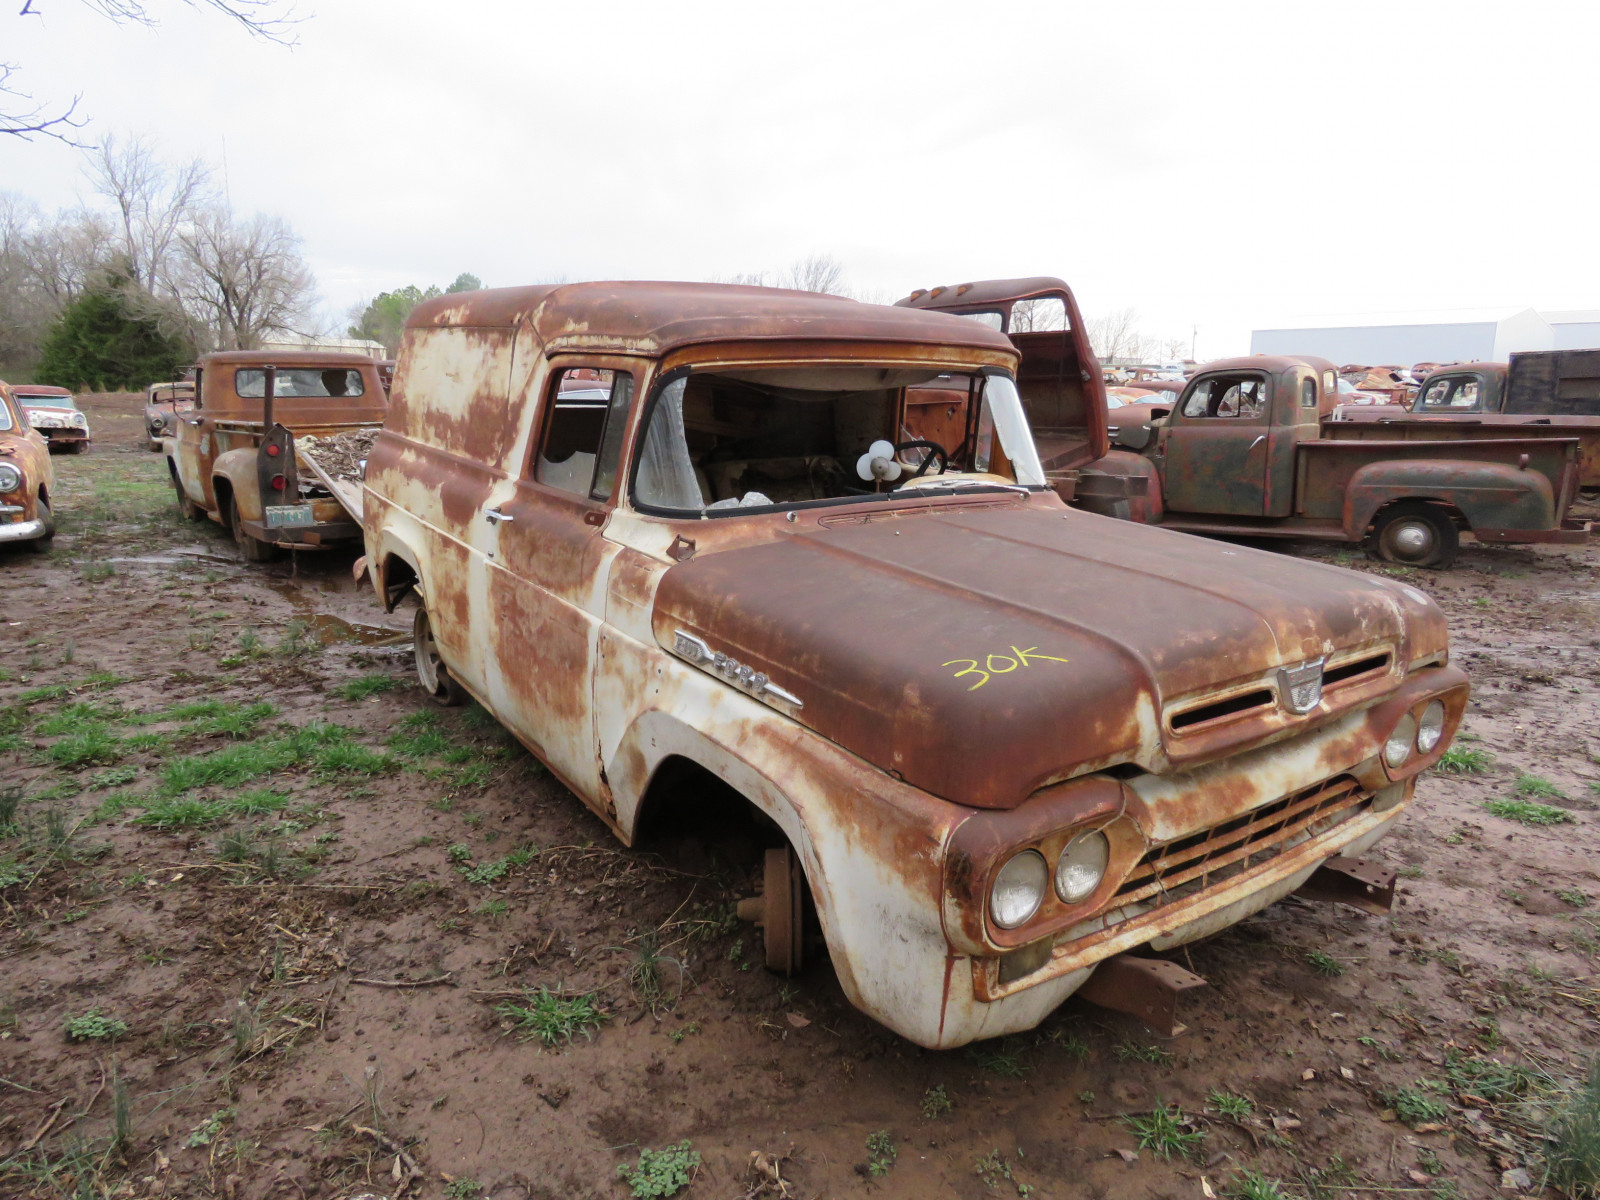 1960 Ford Panel Truck - Image 1